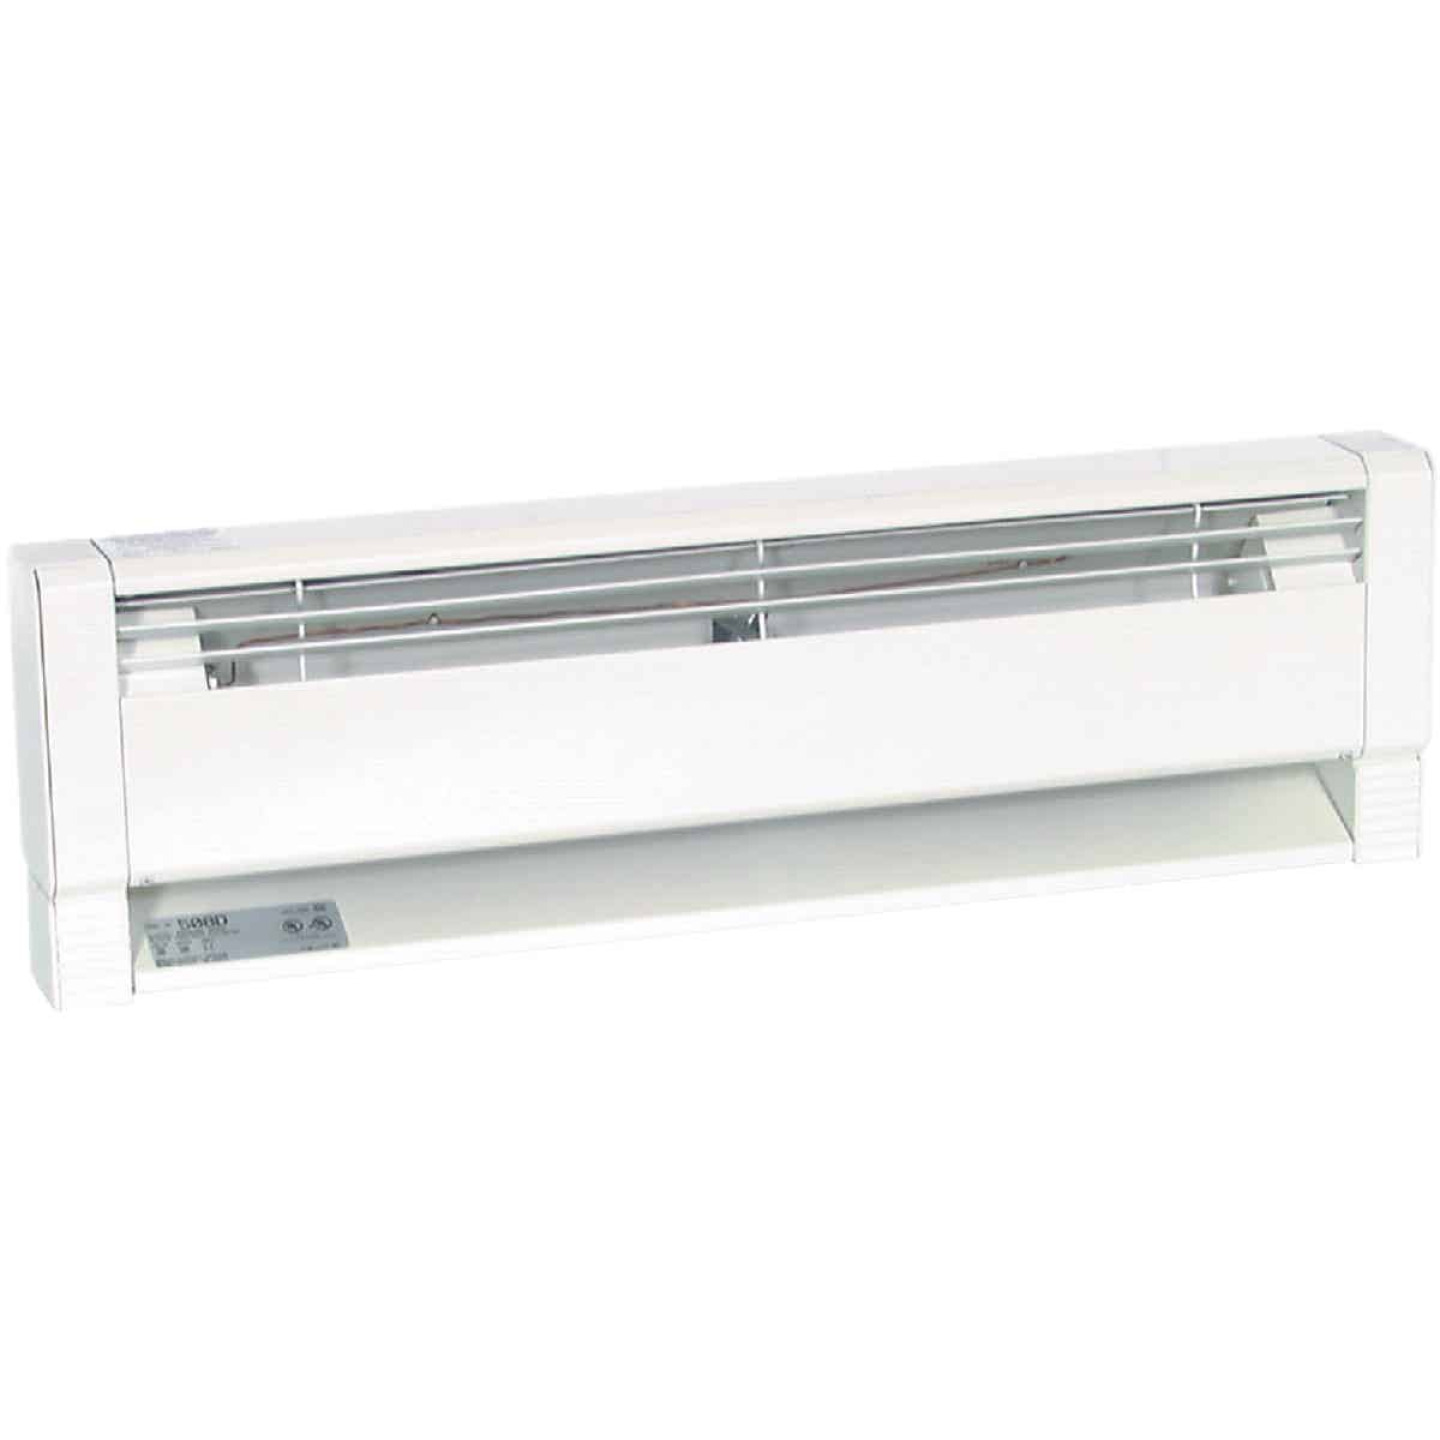 Fahrenheat 70 In. 1500-Watt 240-Volt Hydronic Electric Baseboard Heater, White Image 2